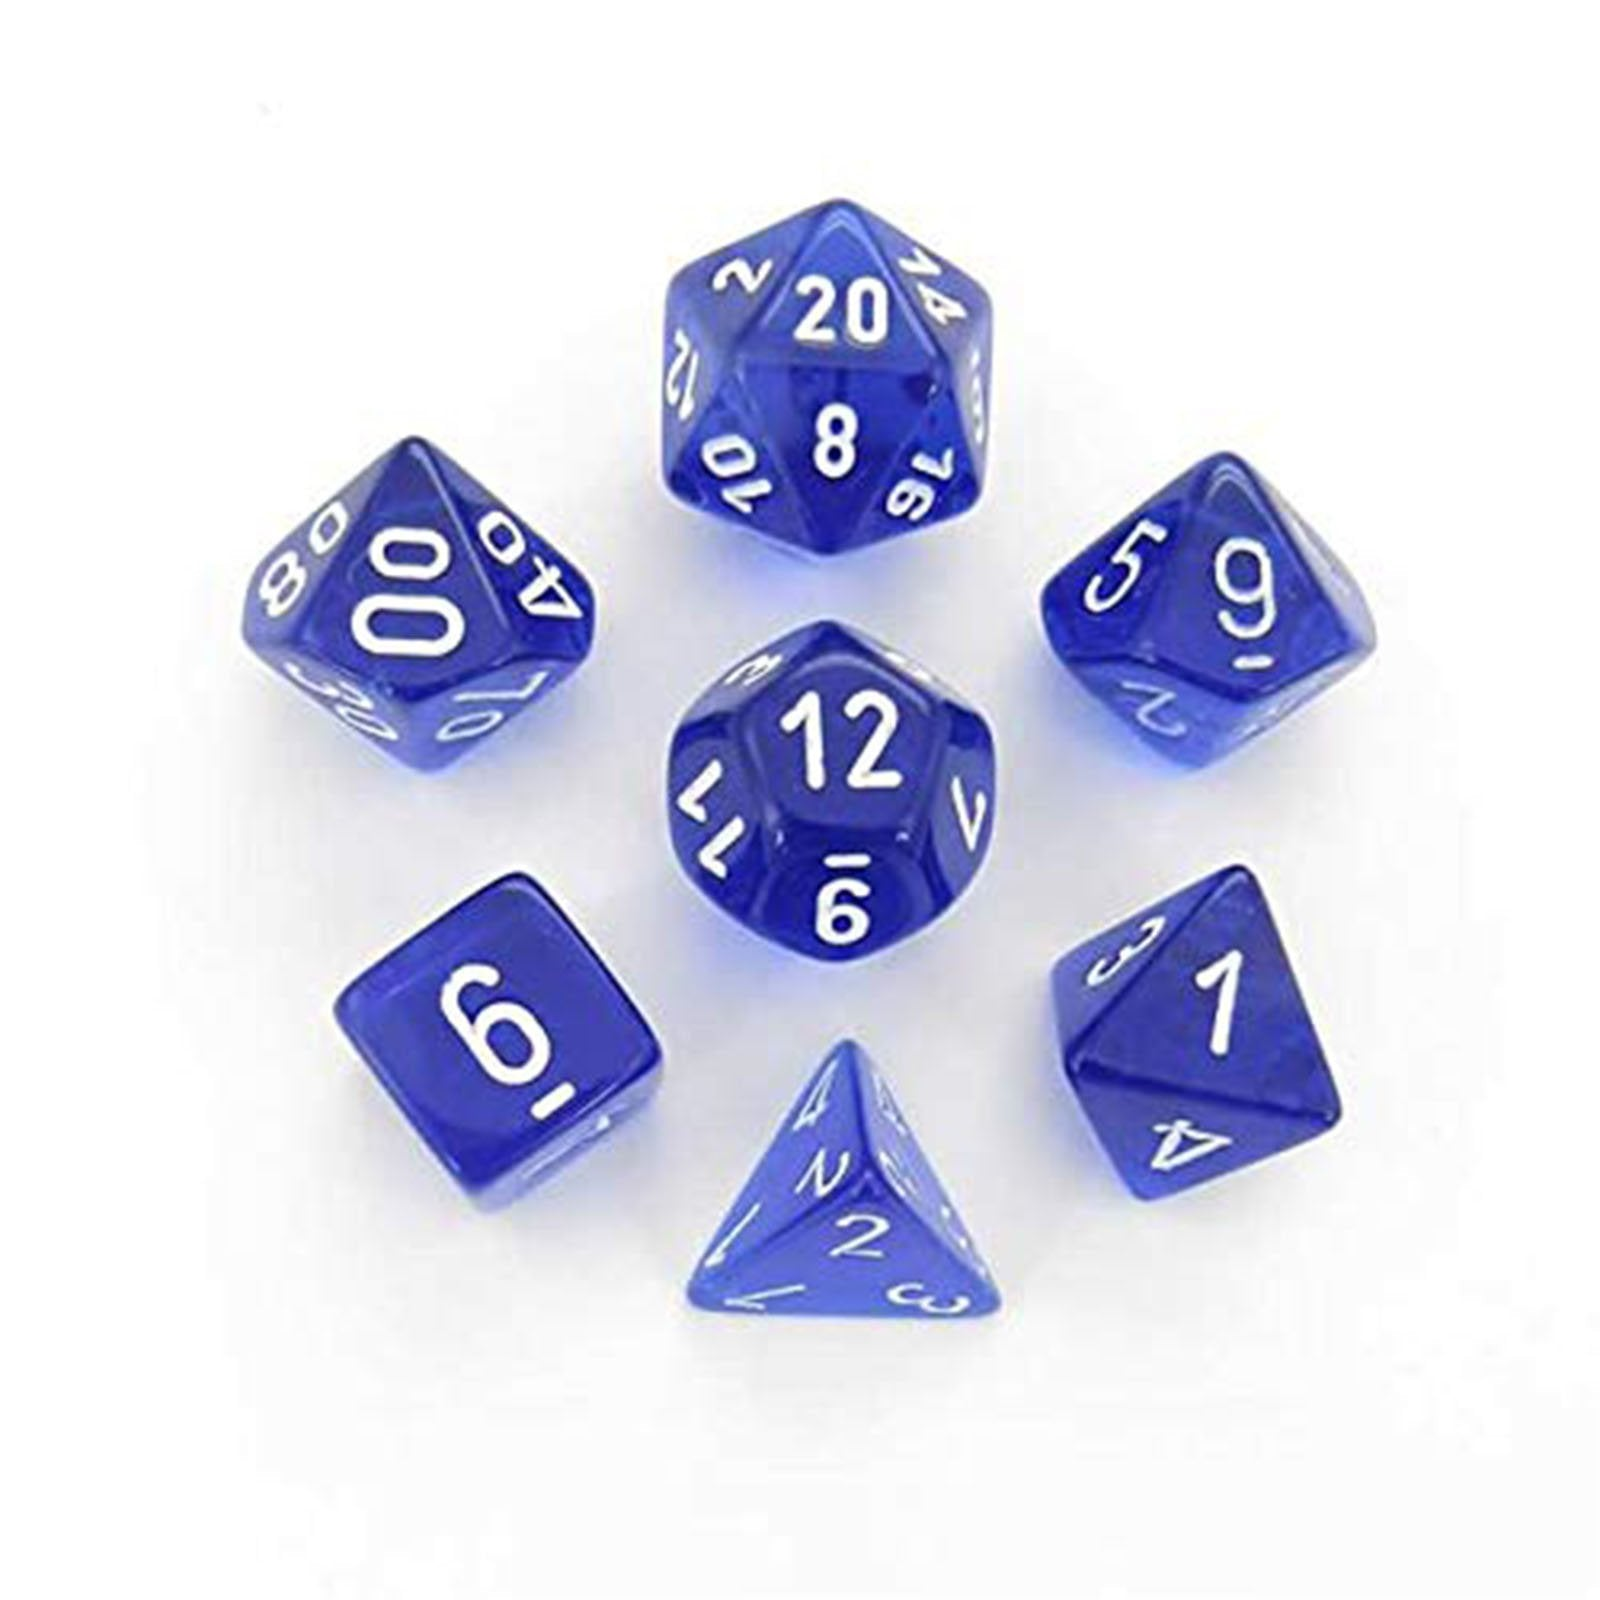 Dice: Chessex